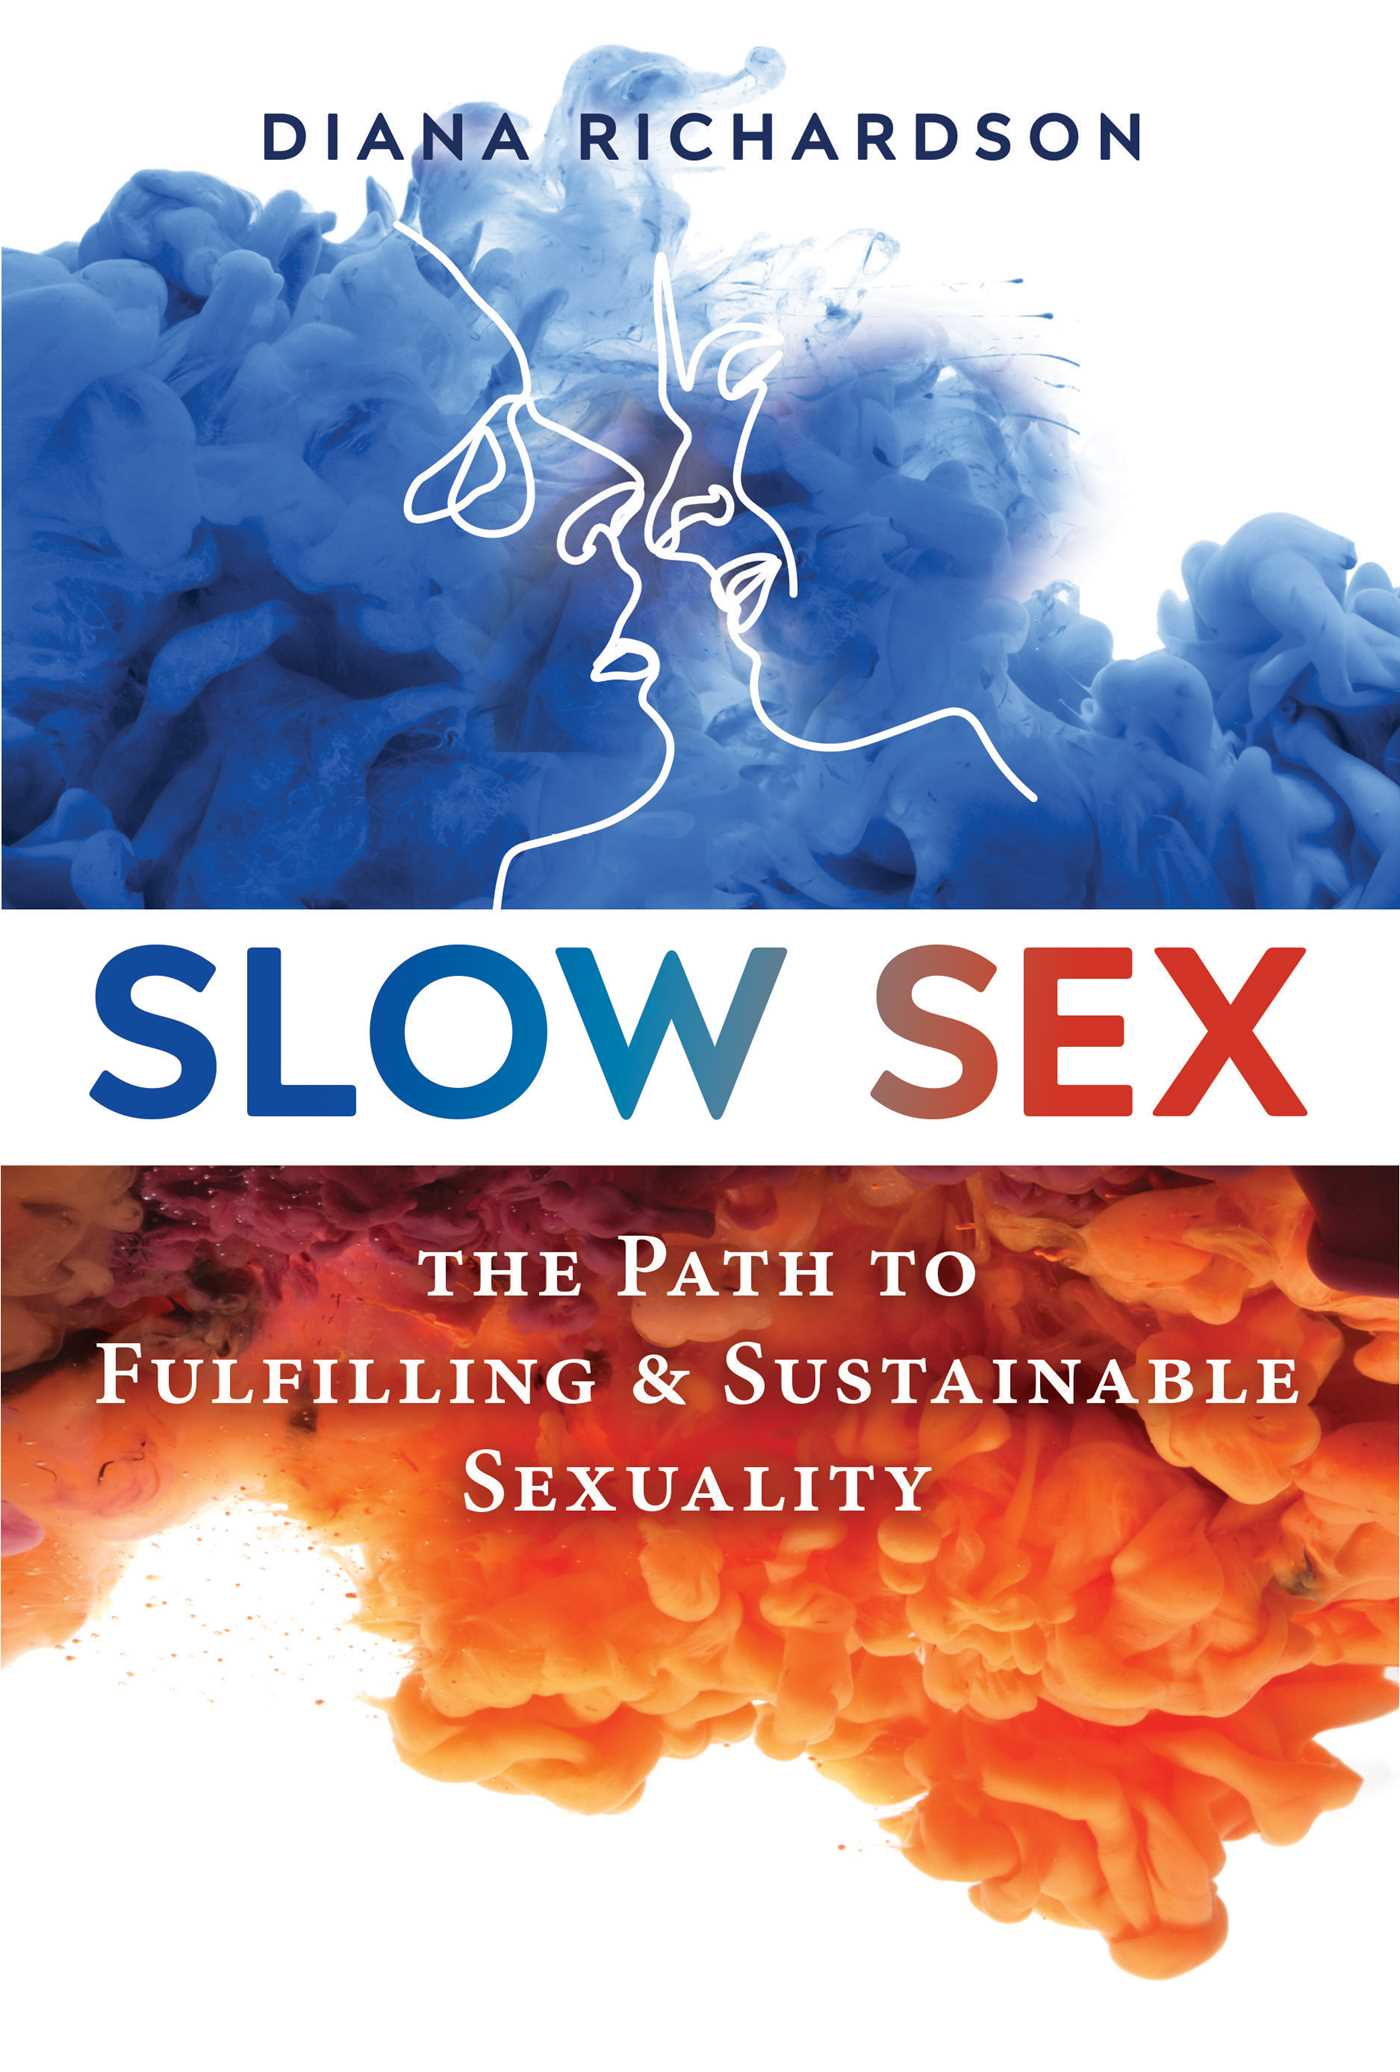 Slow sex 9781594773679 hr